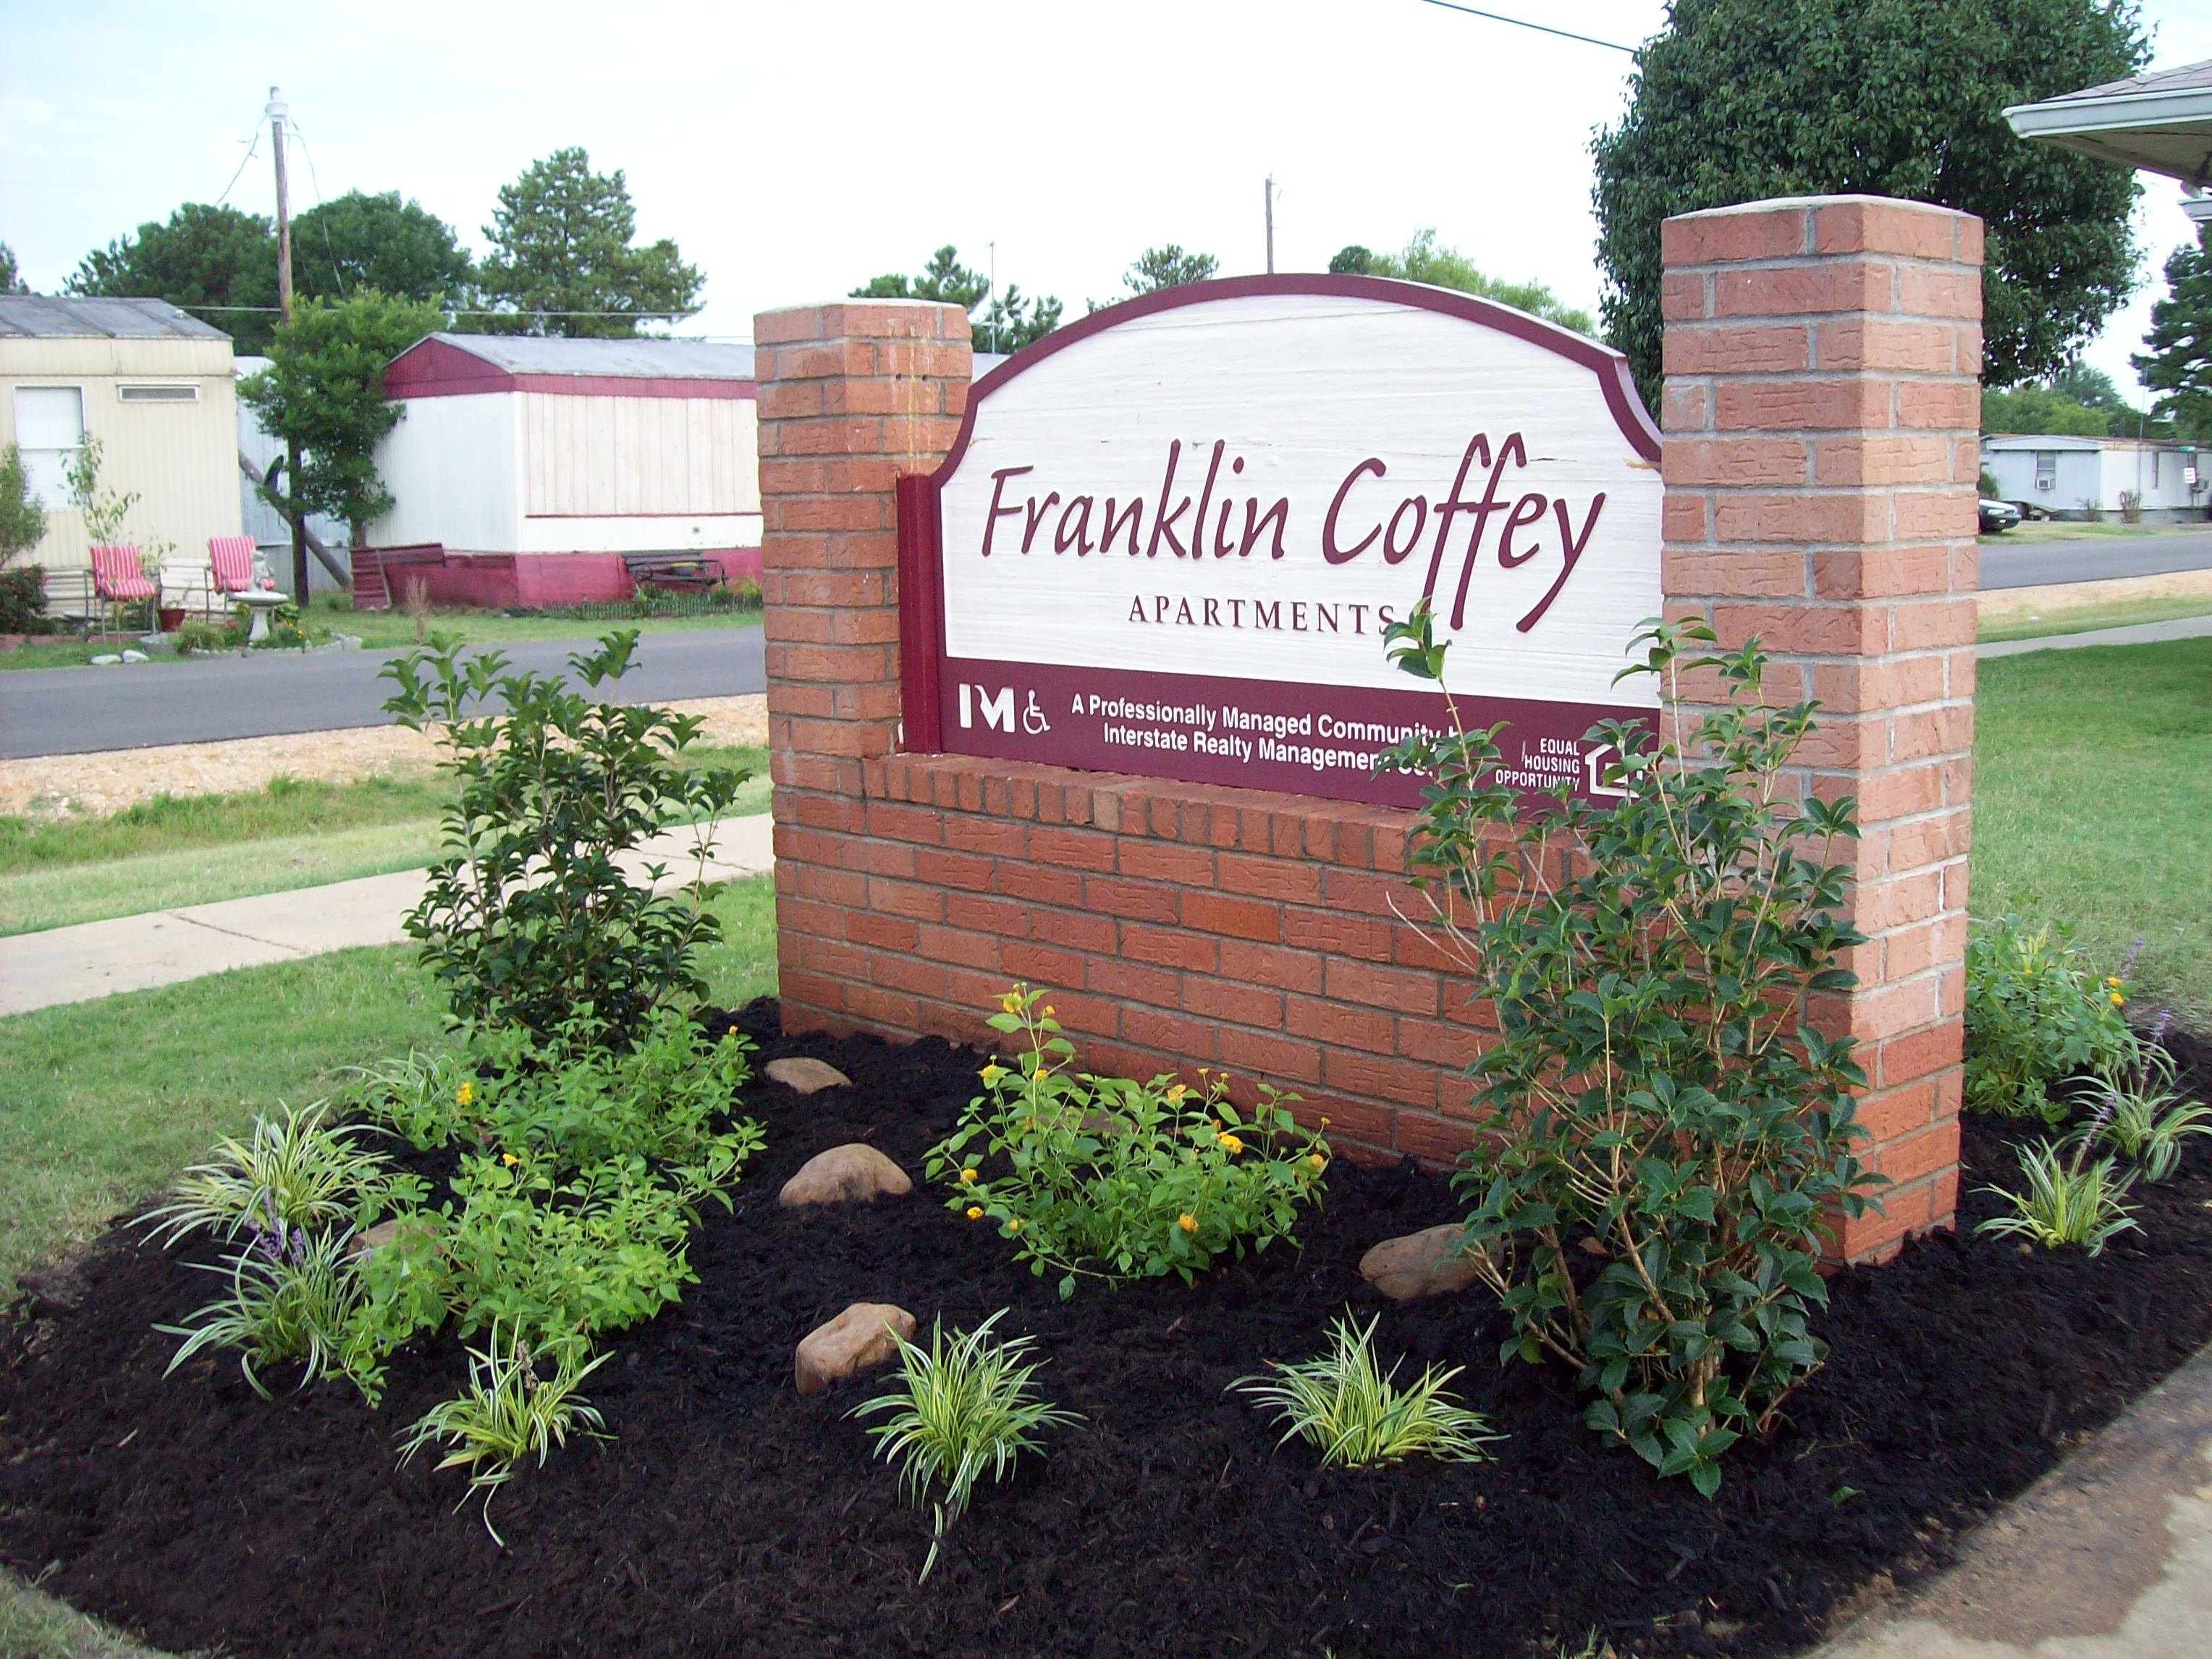 Franklin Coffey Apartments